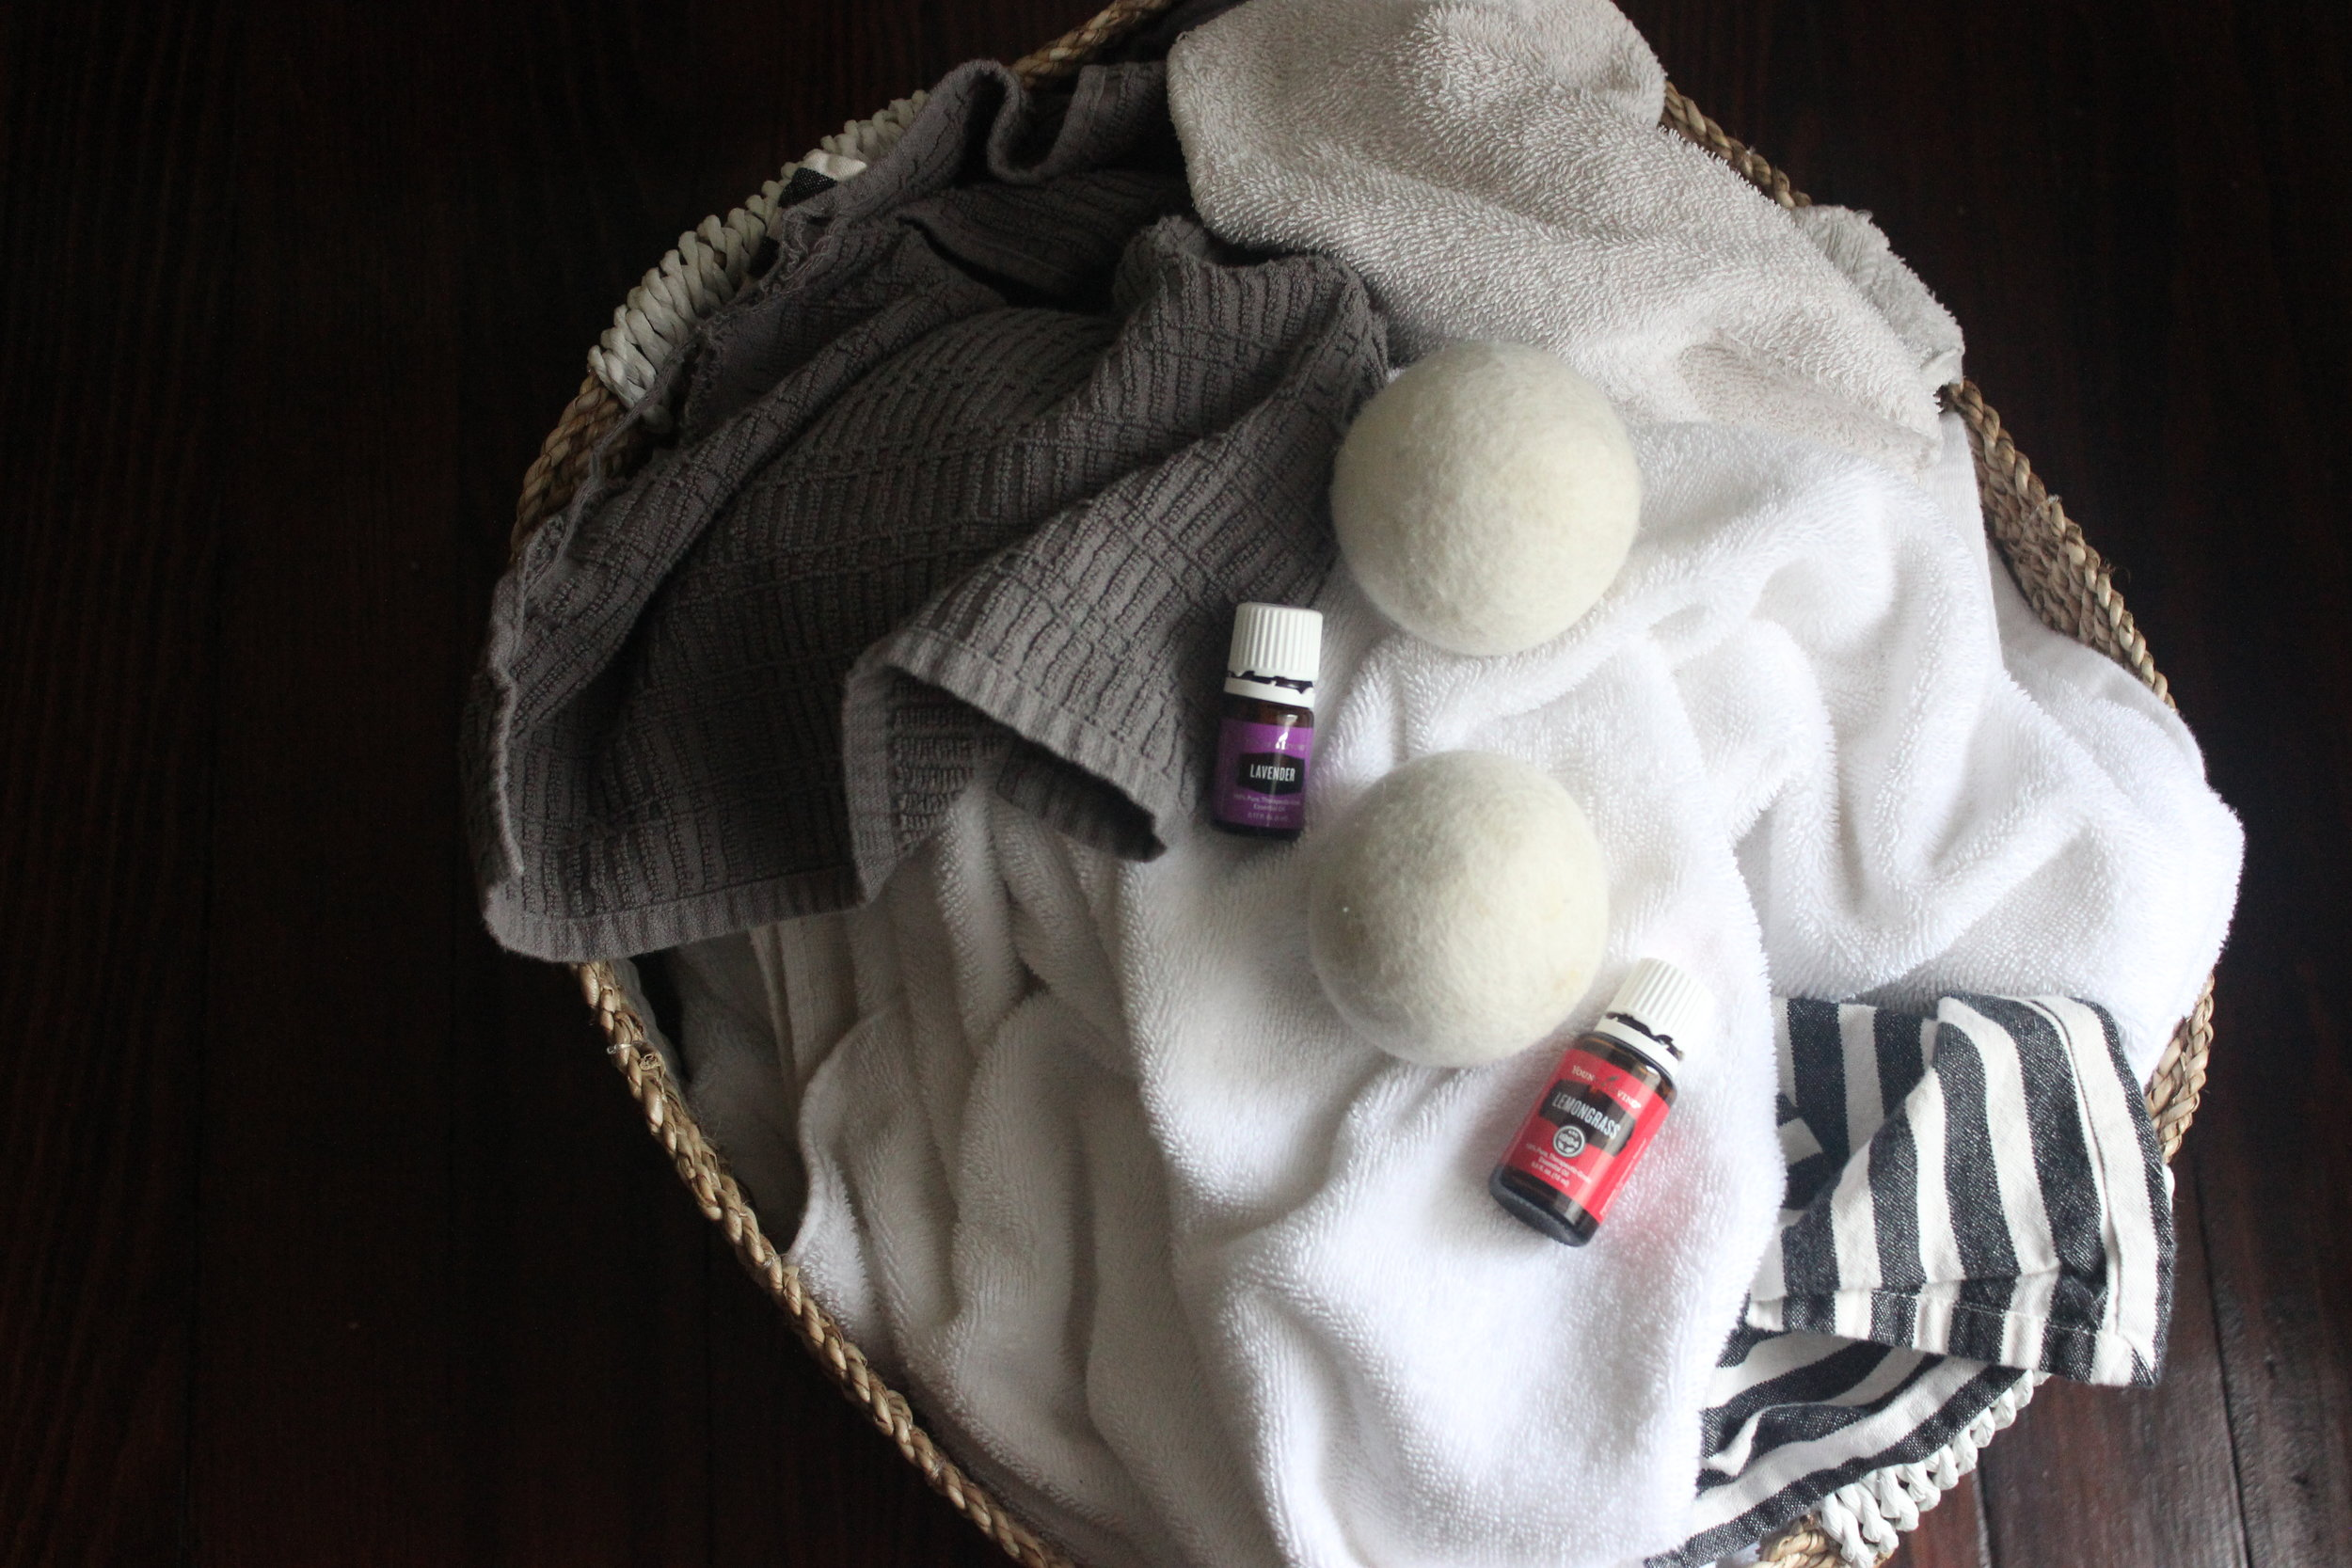 Drying with Wool Dryer balls